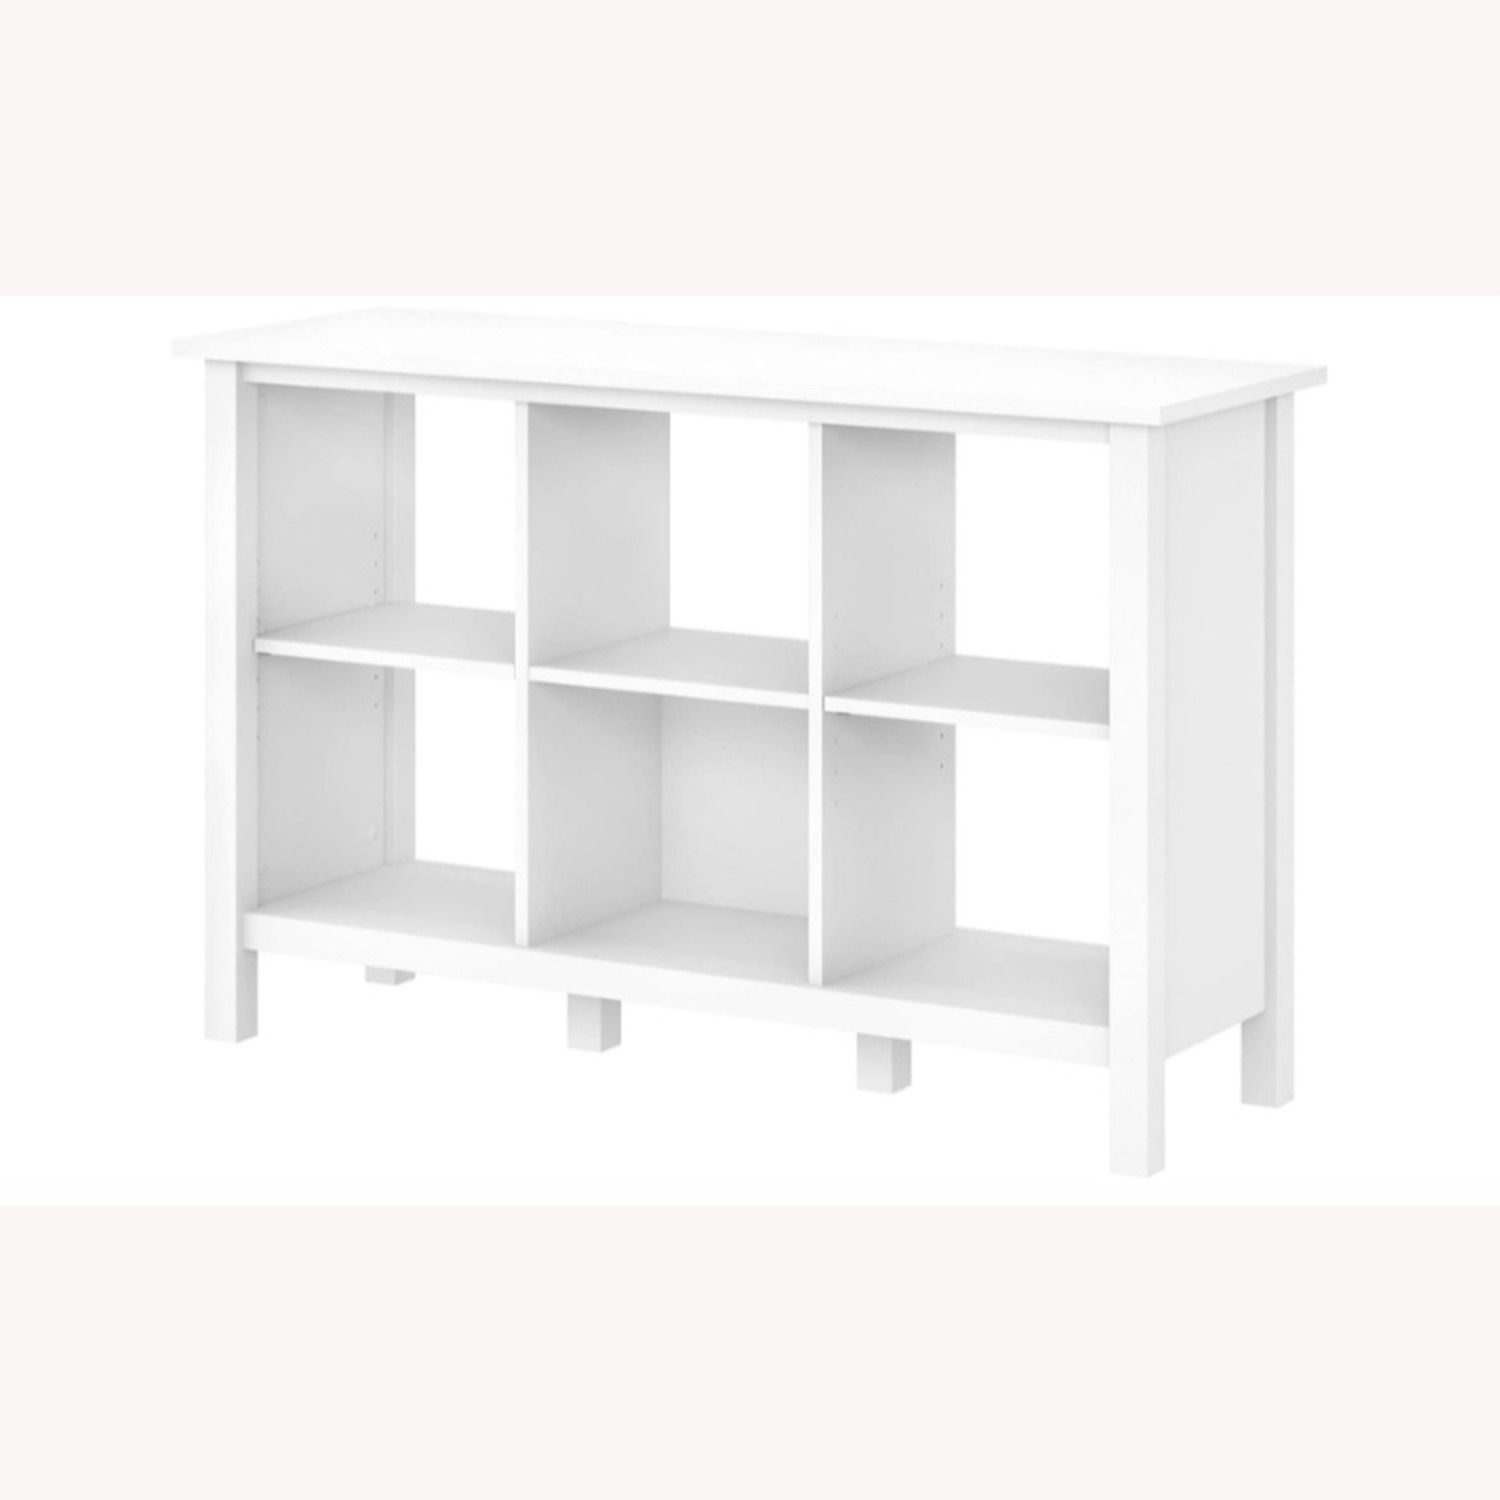 Modern Contemporary 6 Shelves White Wood Bookcase - image-1